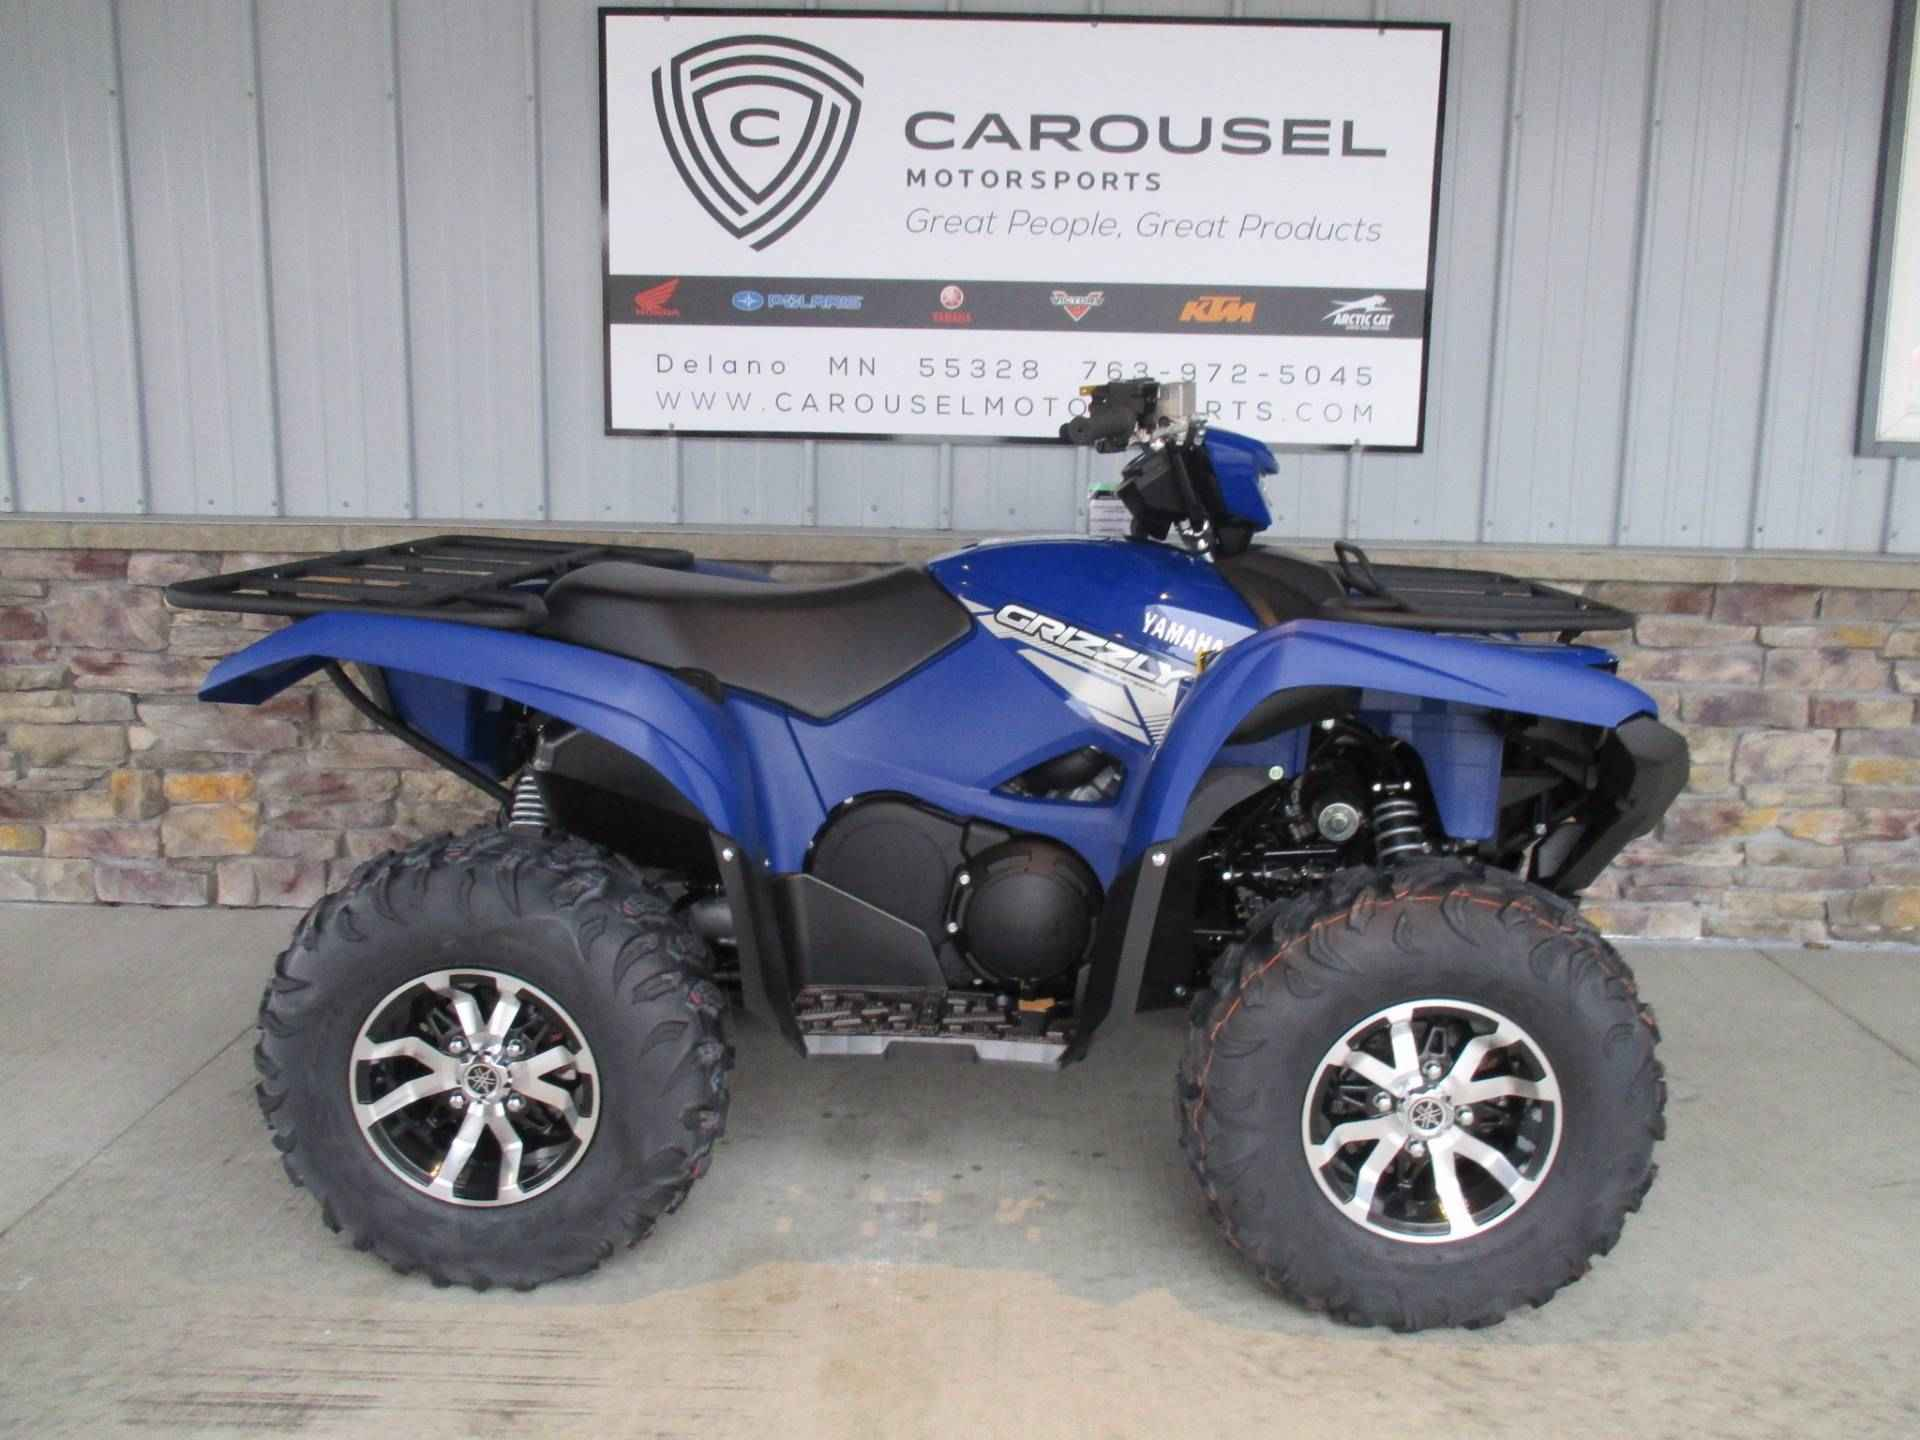 2017 Yamaha Grizzly >> New 2017 Yamaha Grizzly Eps Atvs For Sale In Minnesota On Atv Trades